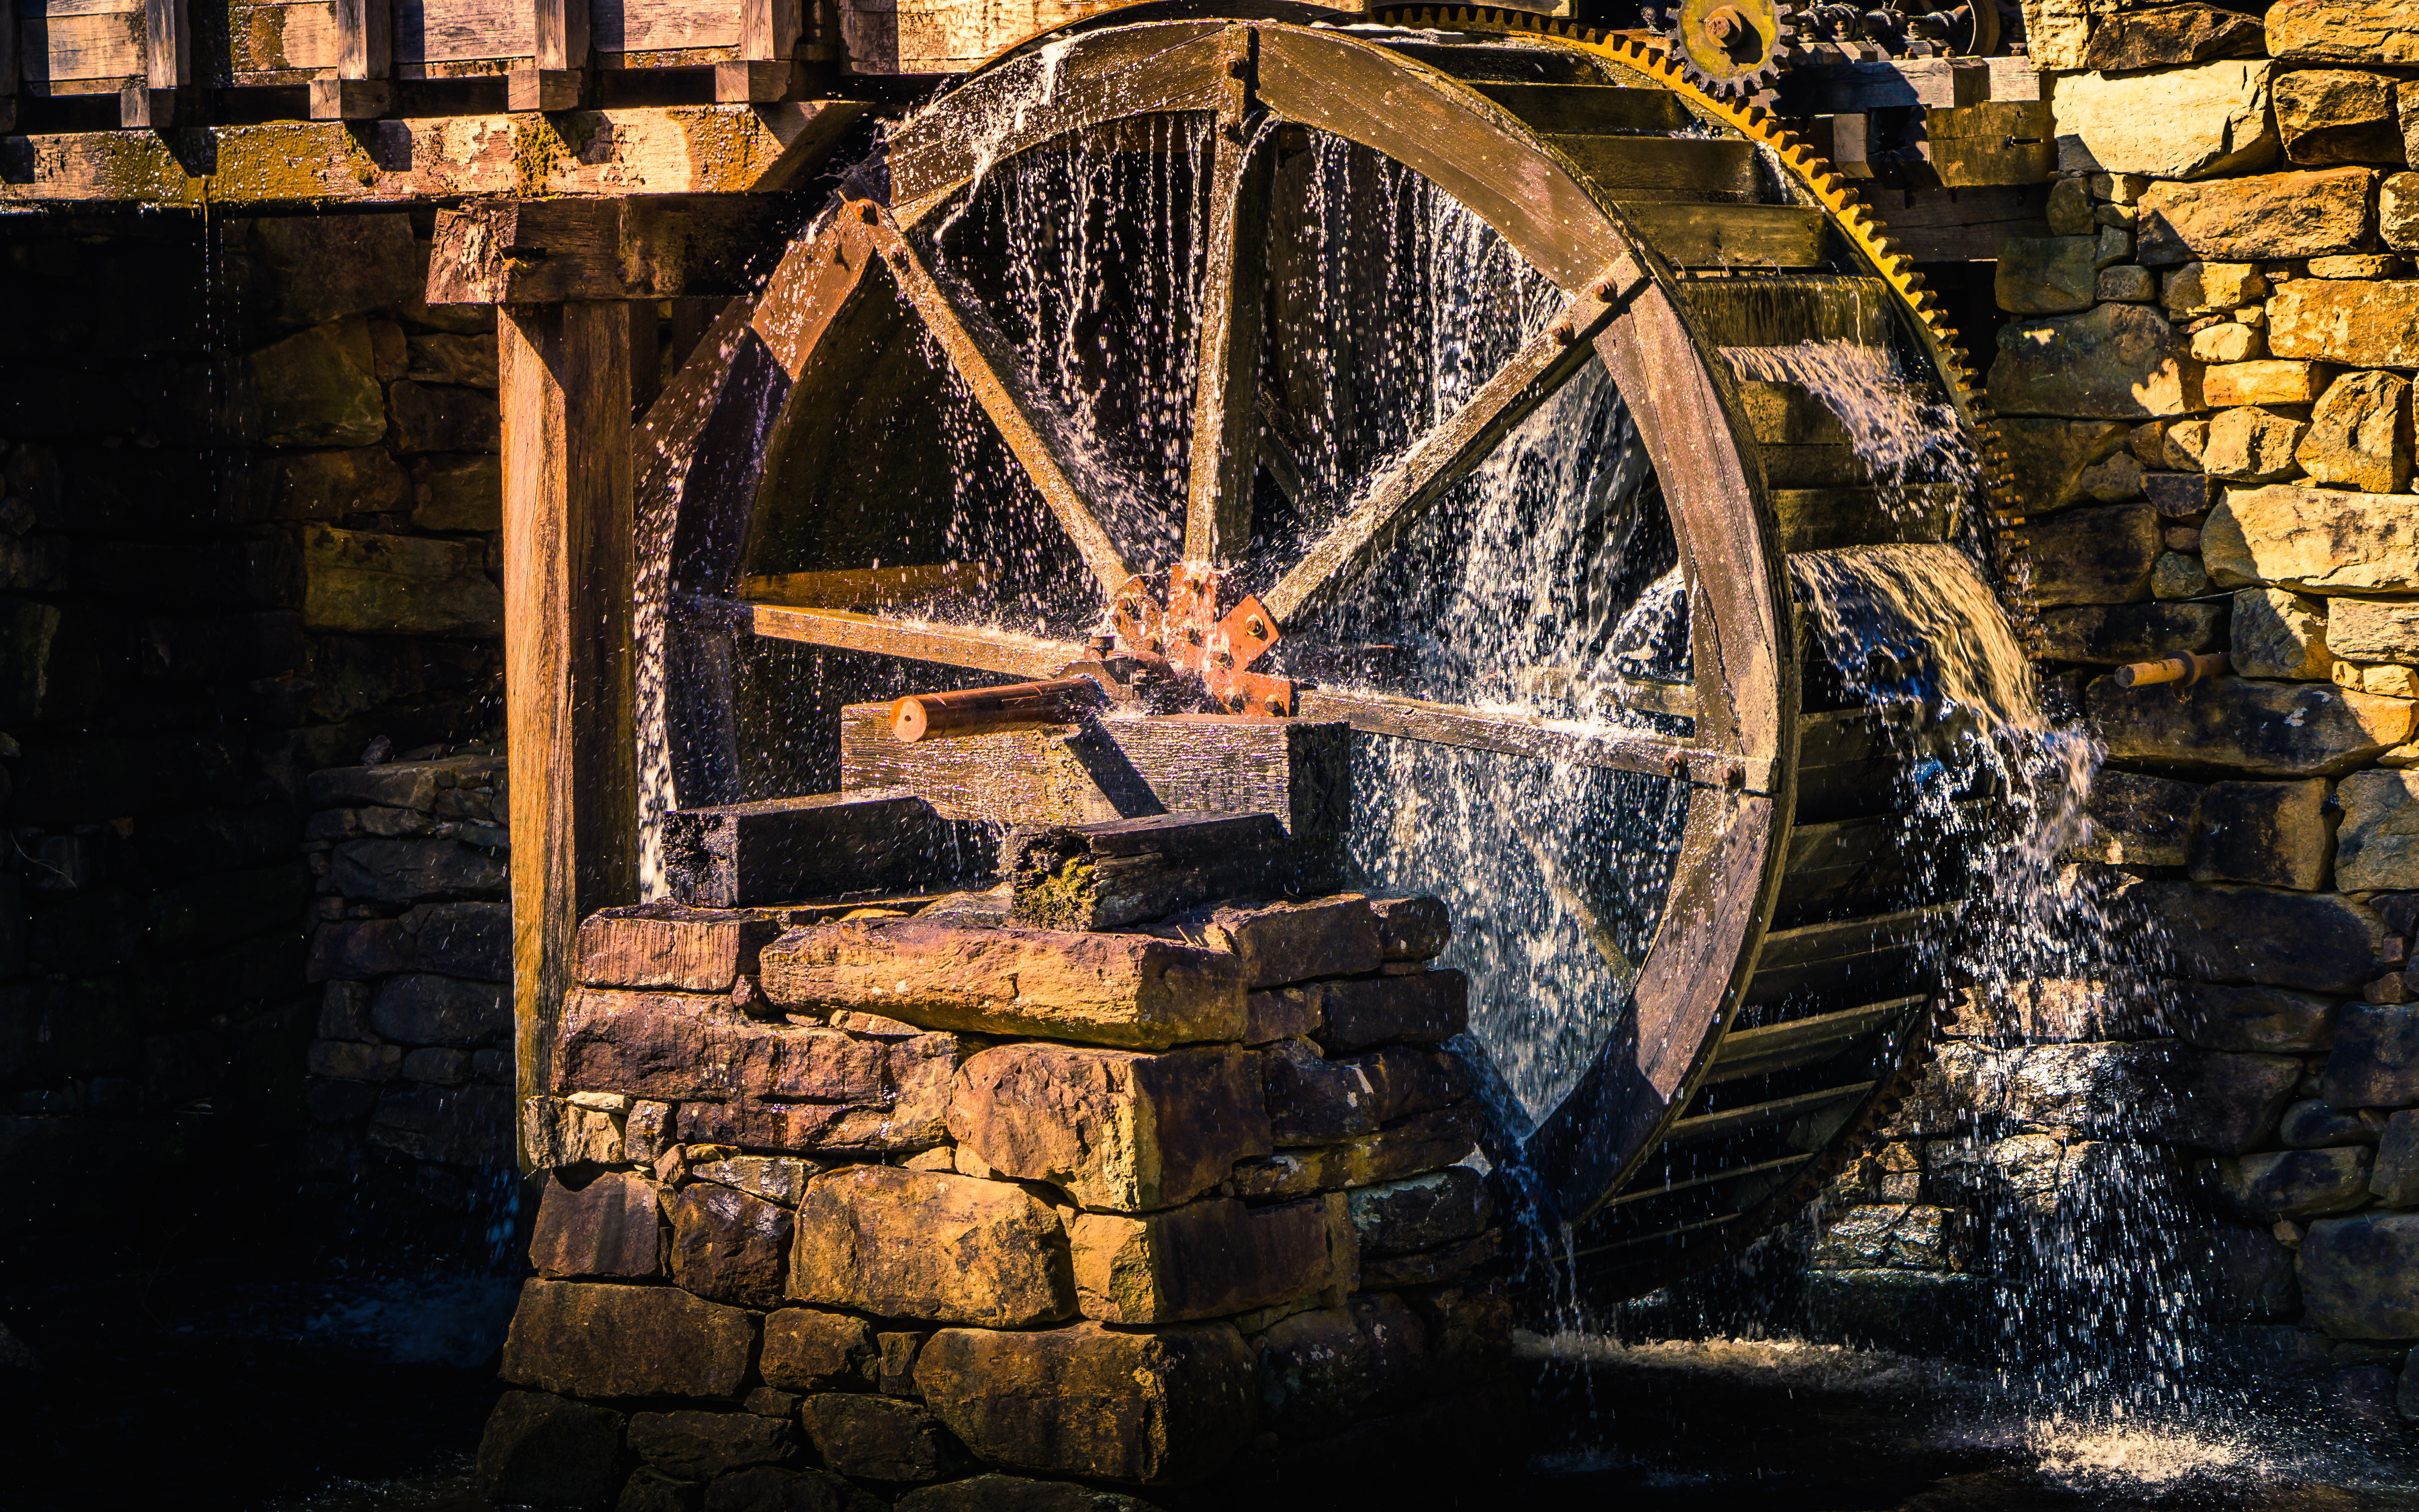 Douglas Antionne Gartrell by Shutterstock, a working watermill presenting automation